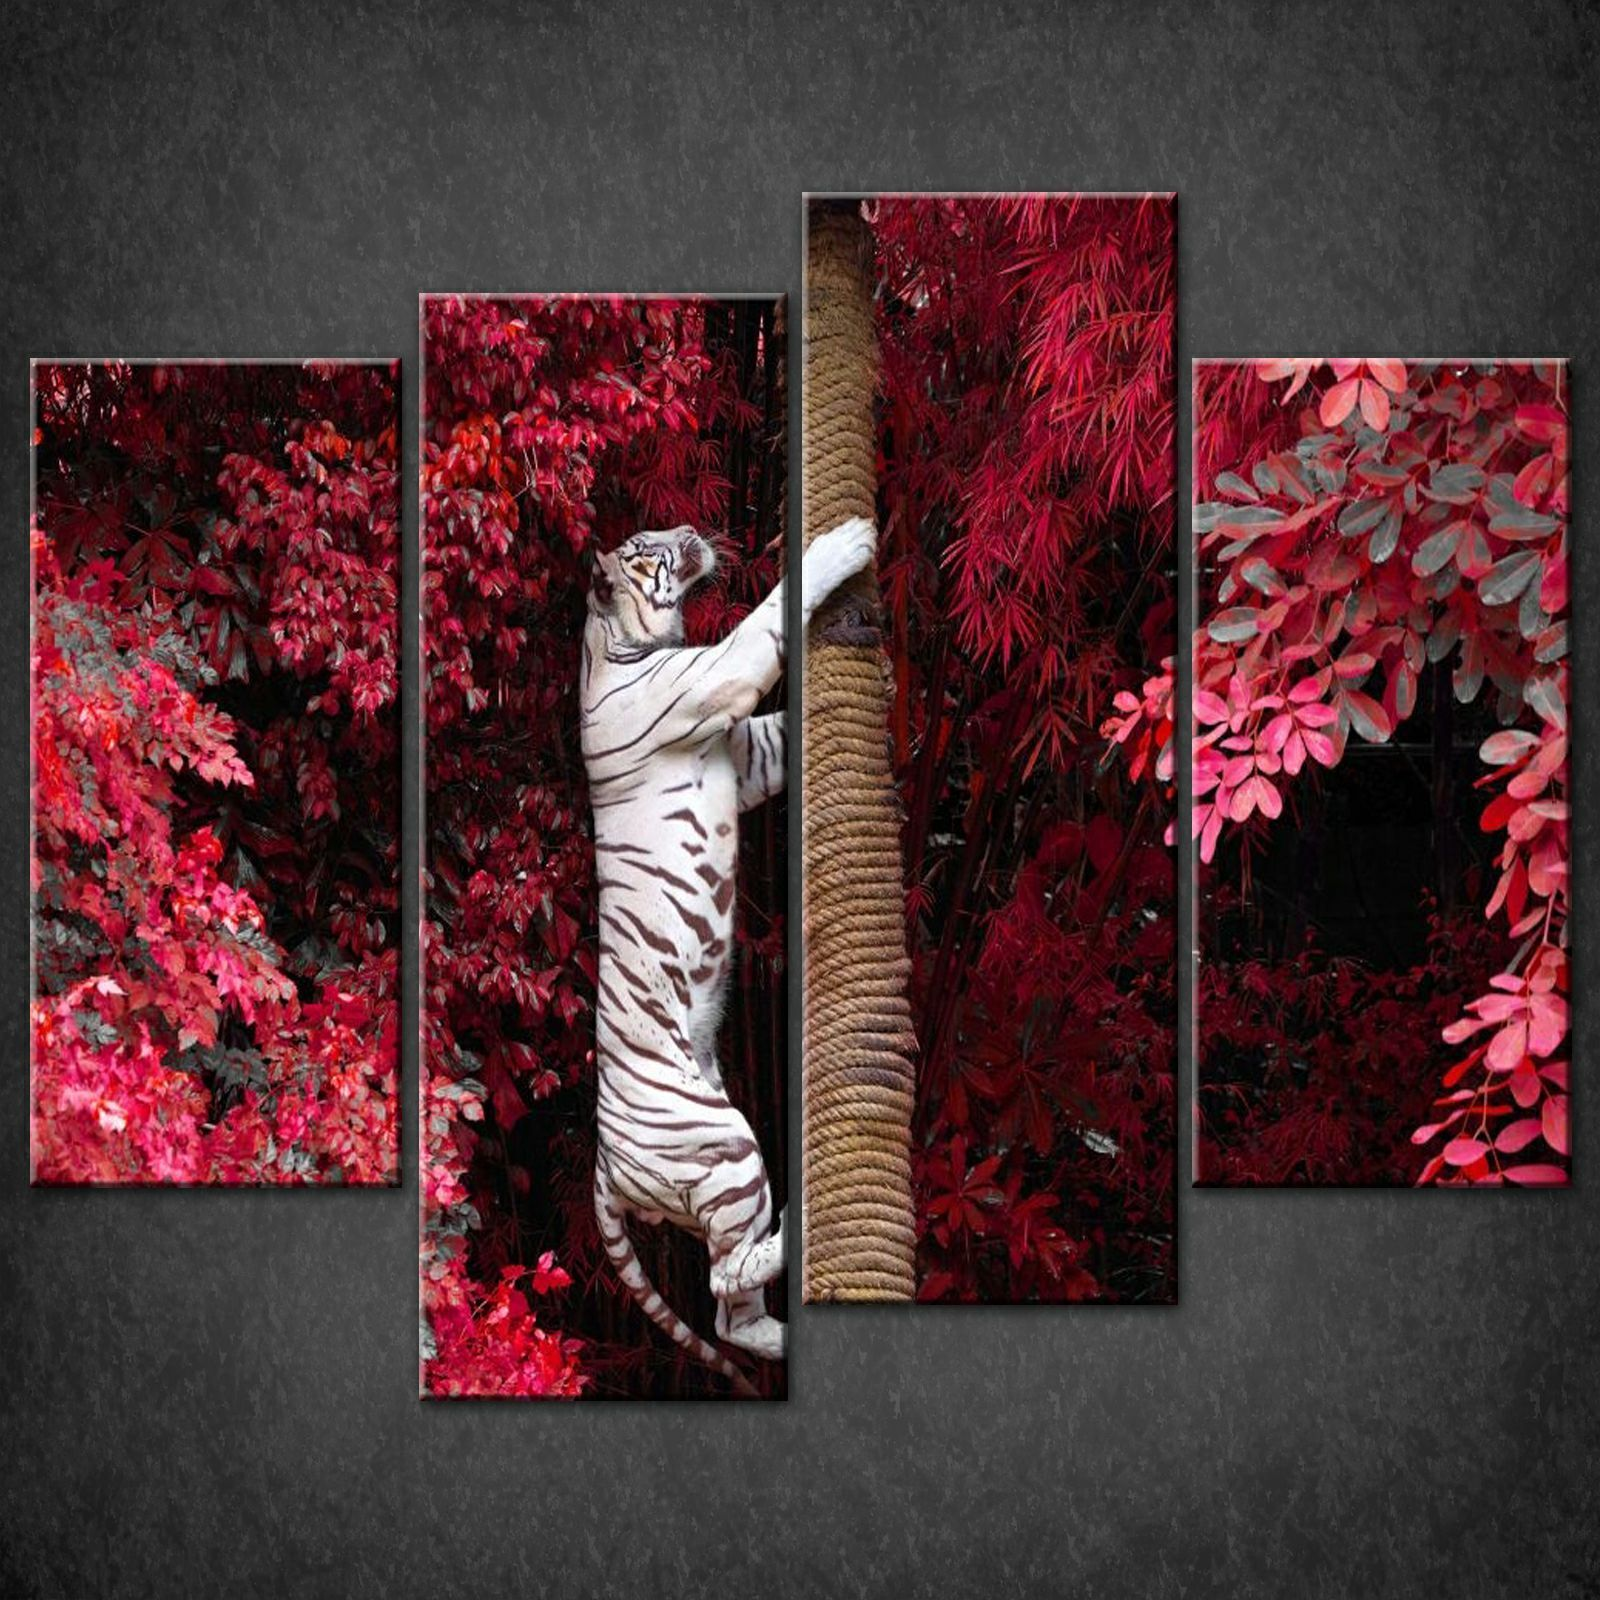 TIGER-CLIMBING-TREE-SPLIT-CANVAS-WALL-ART-PICTURES-PRINTS-LARGER-SIZES-AVAILABLE-111515769990